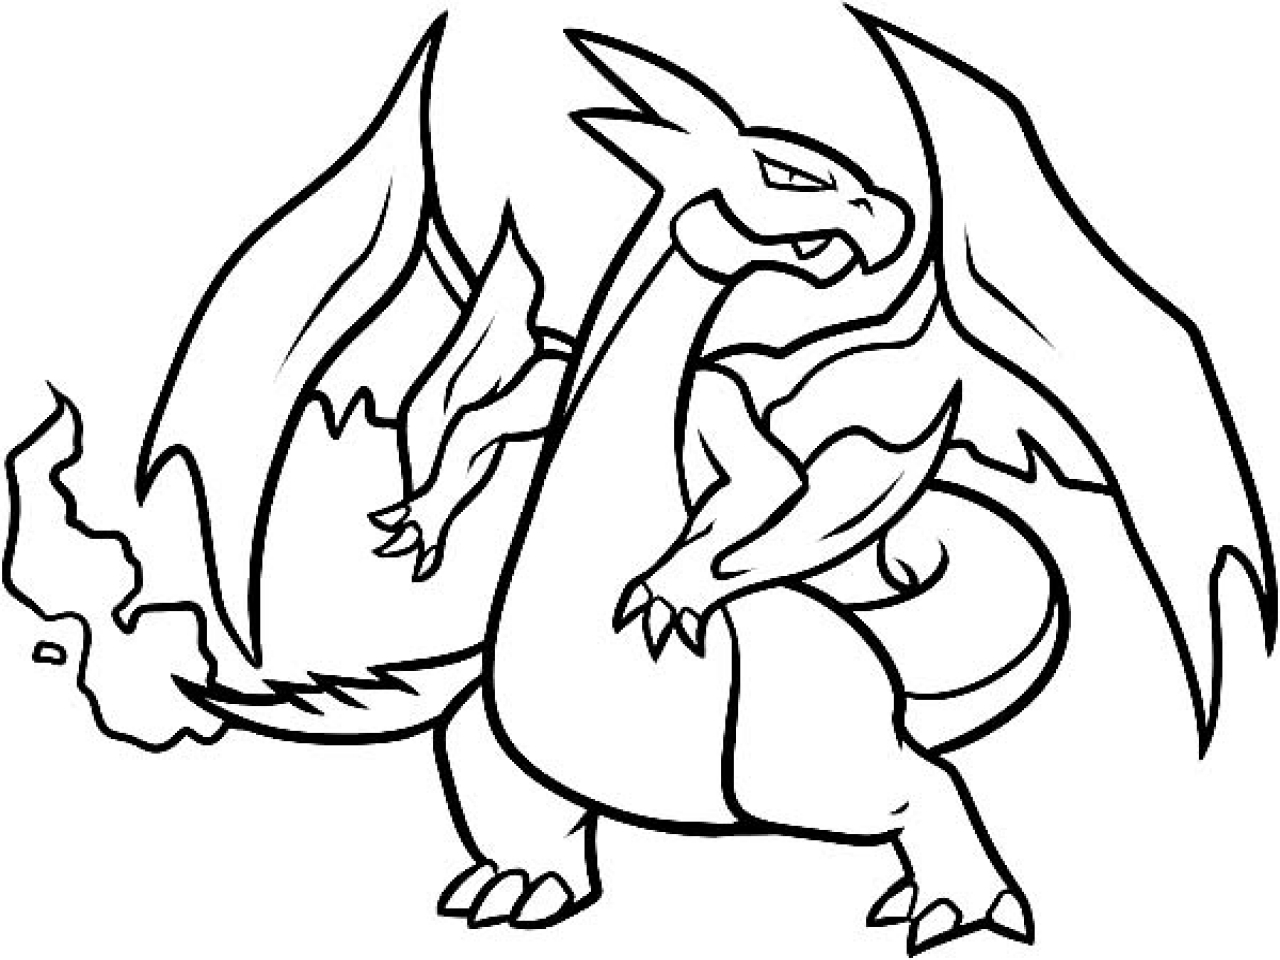 Mega Charizard X Drawing At Getdrawings Com Free For Personal Use